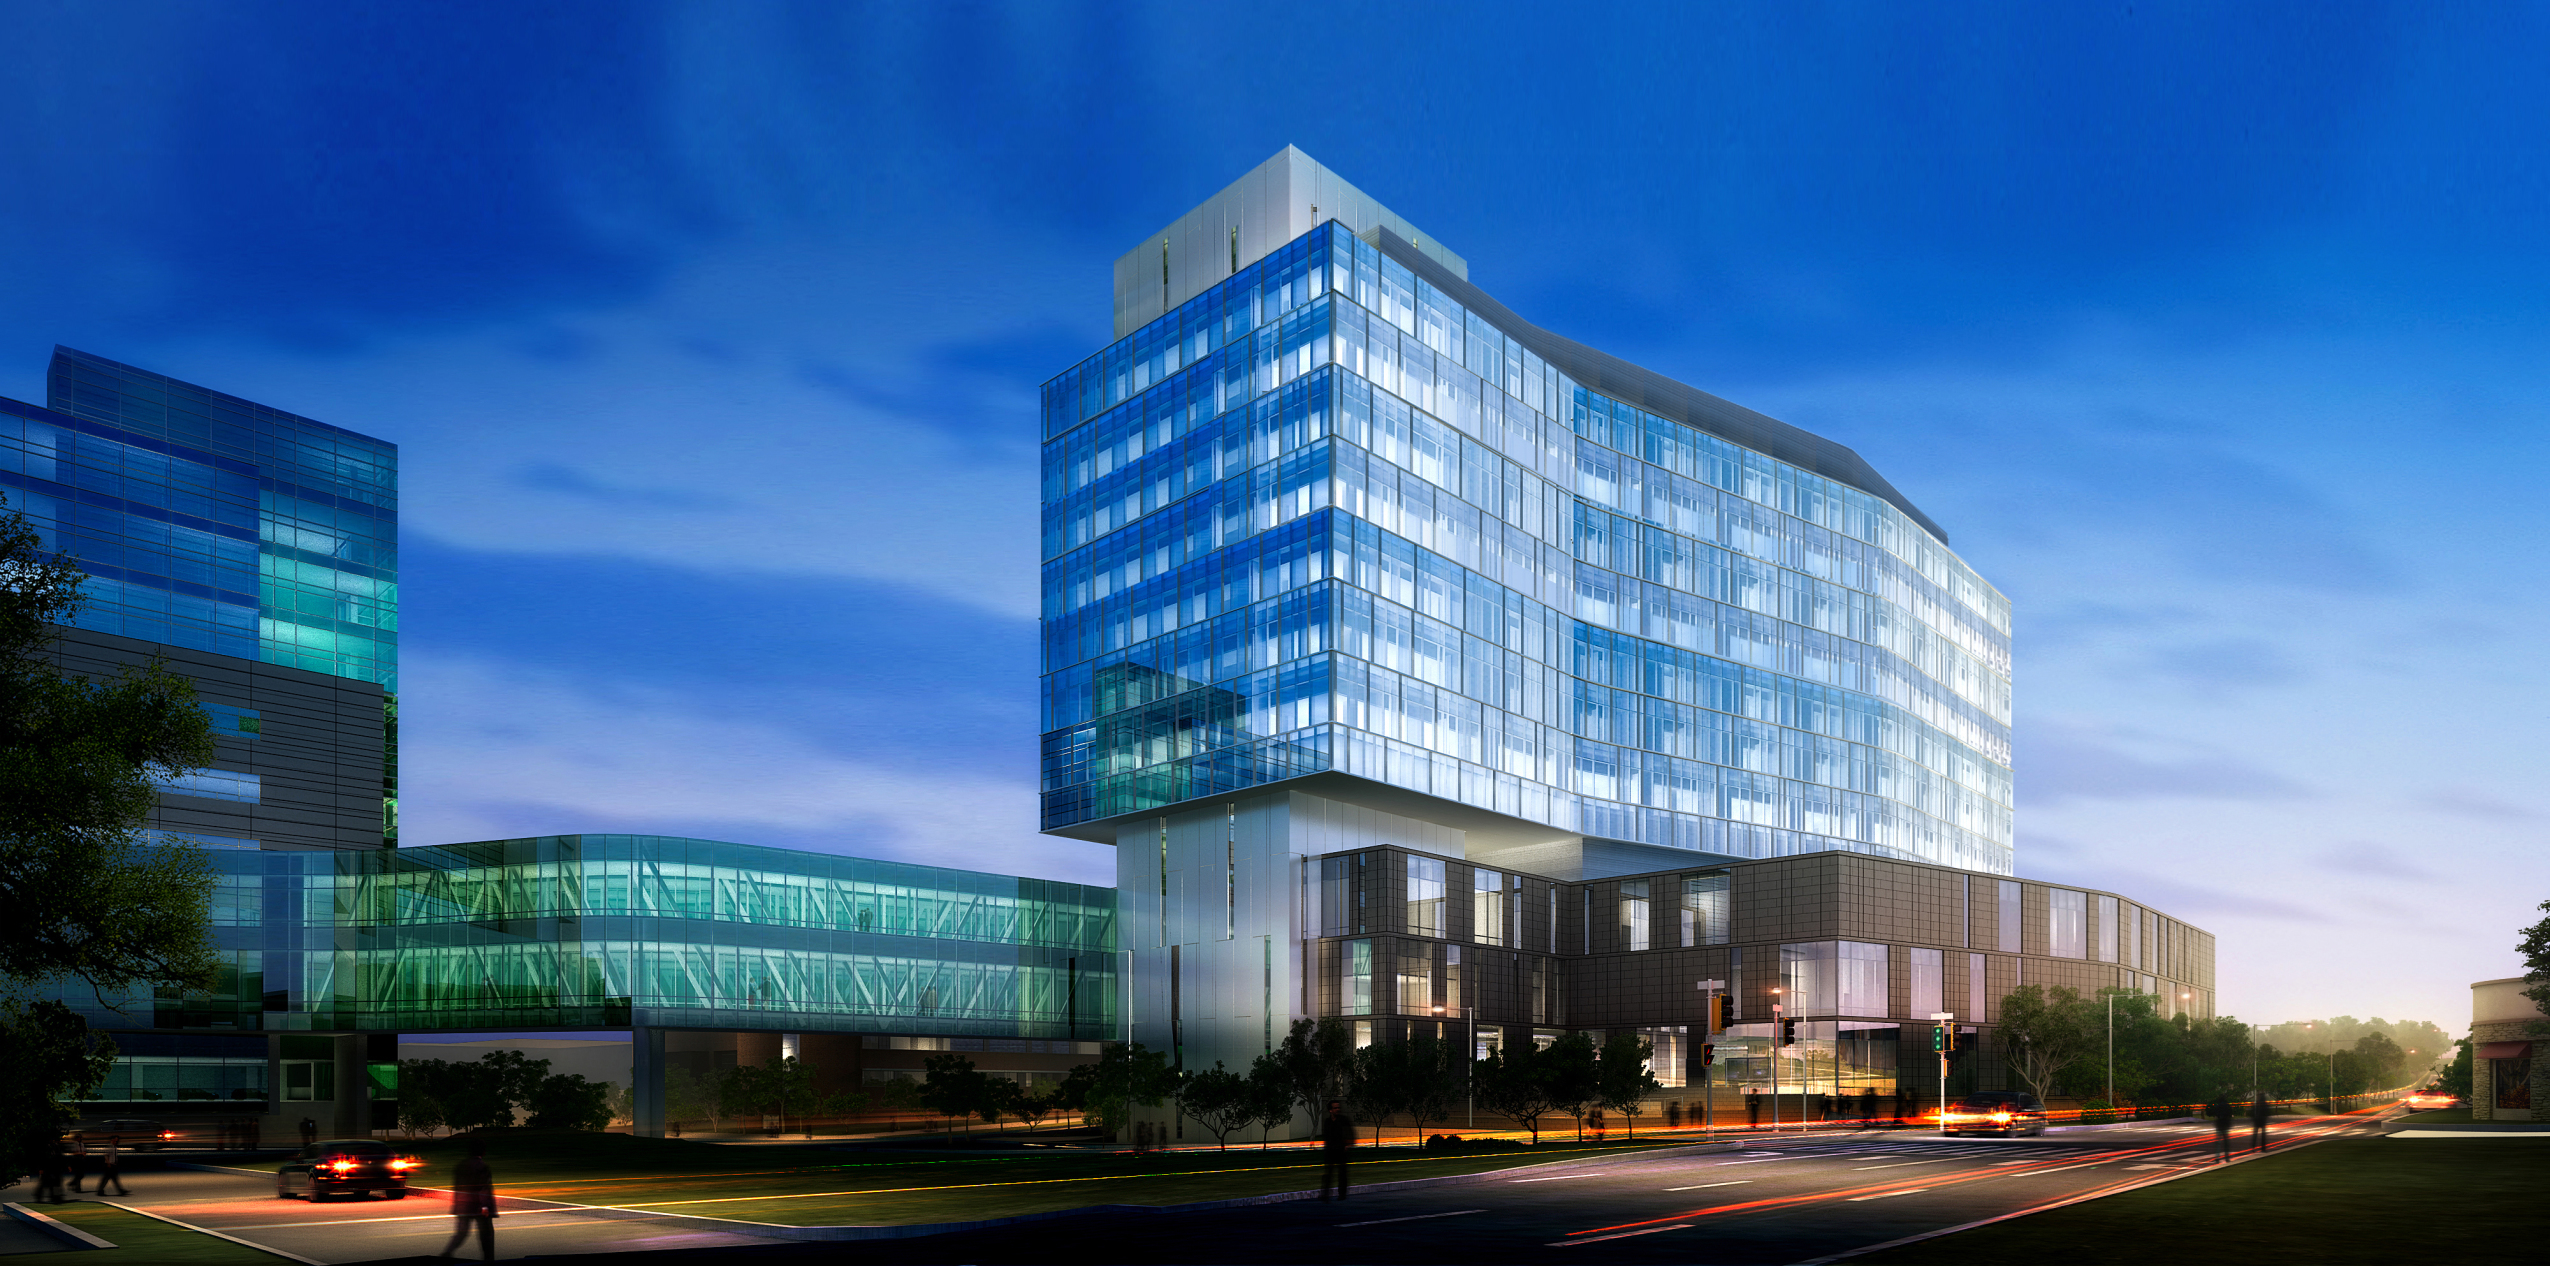 City Of Dallas Careers >> The University of Kansas Hospital, Cambridge Tower A | Cannon Design